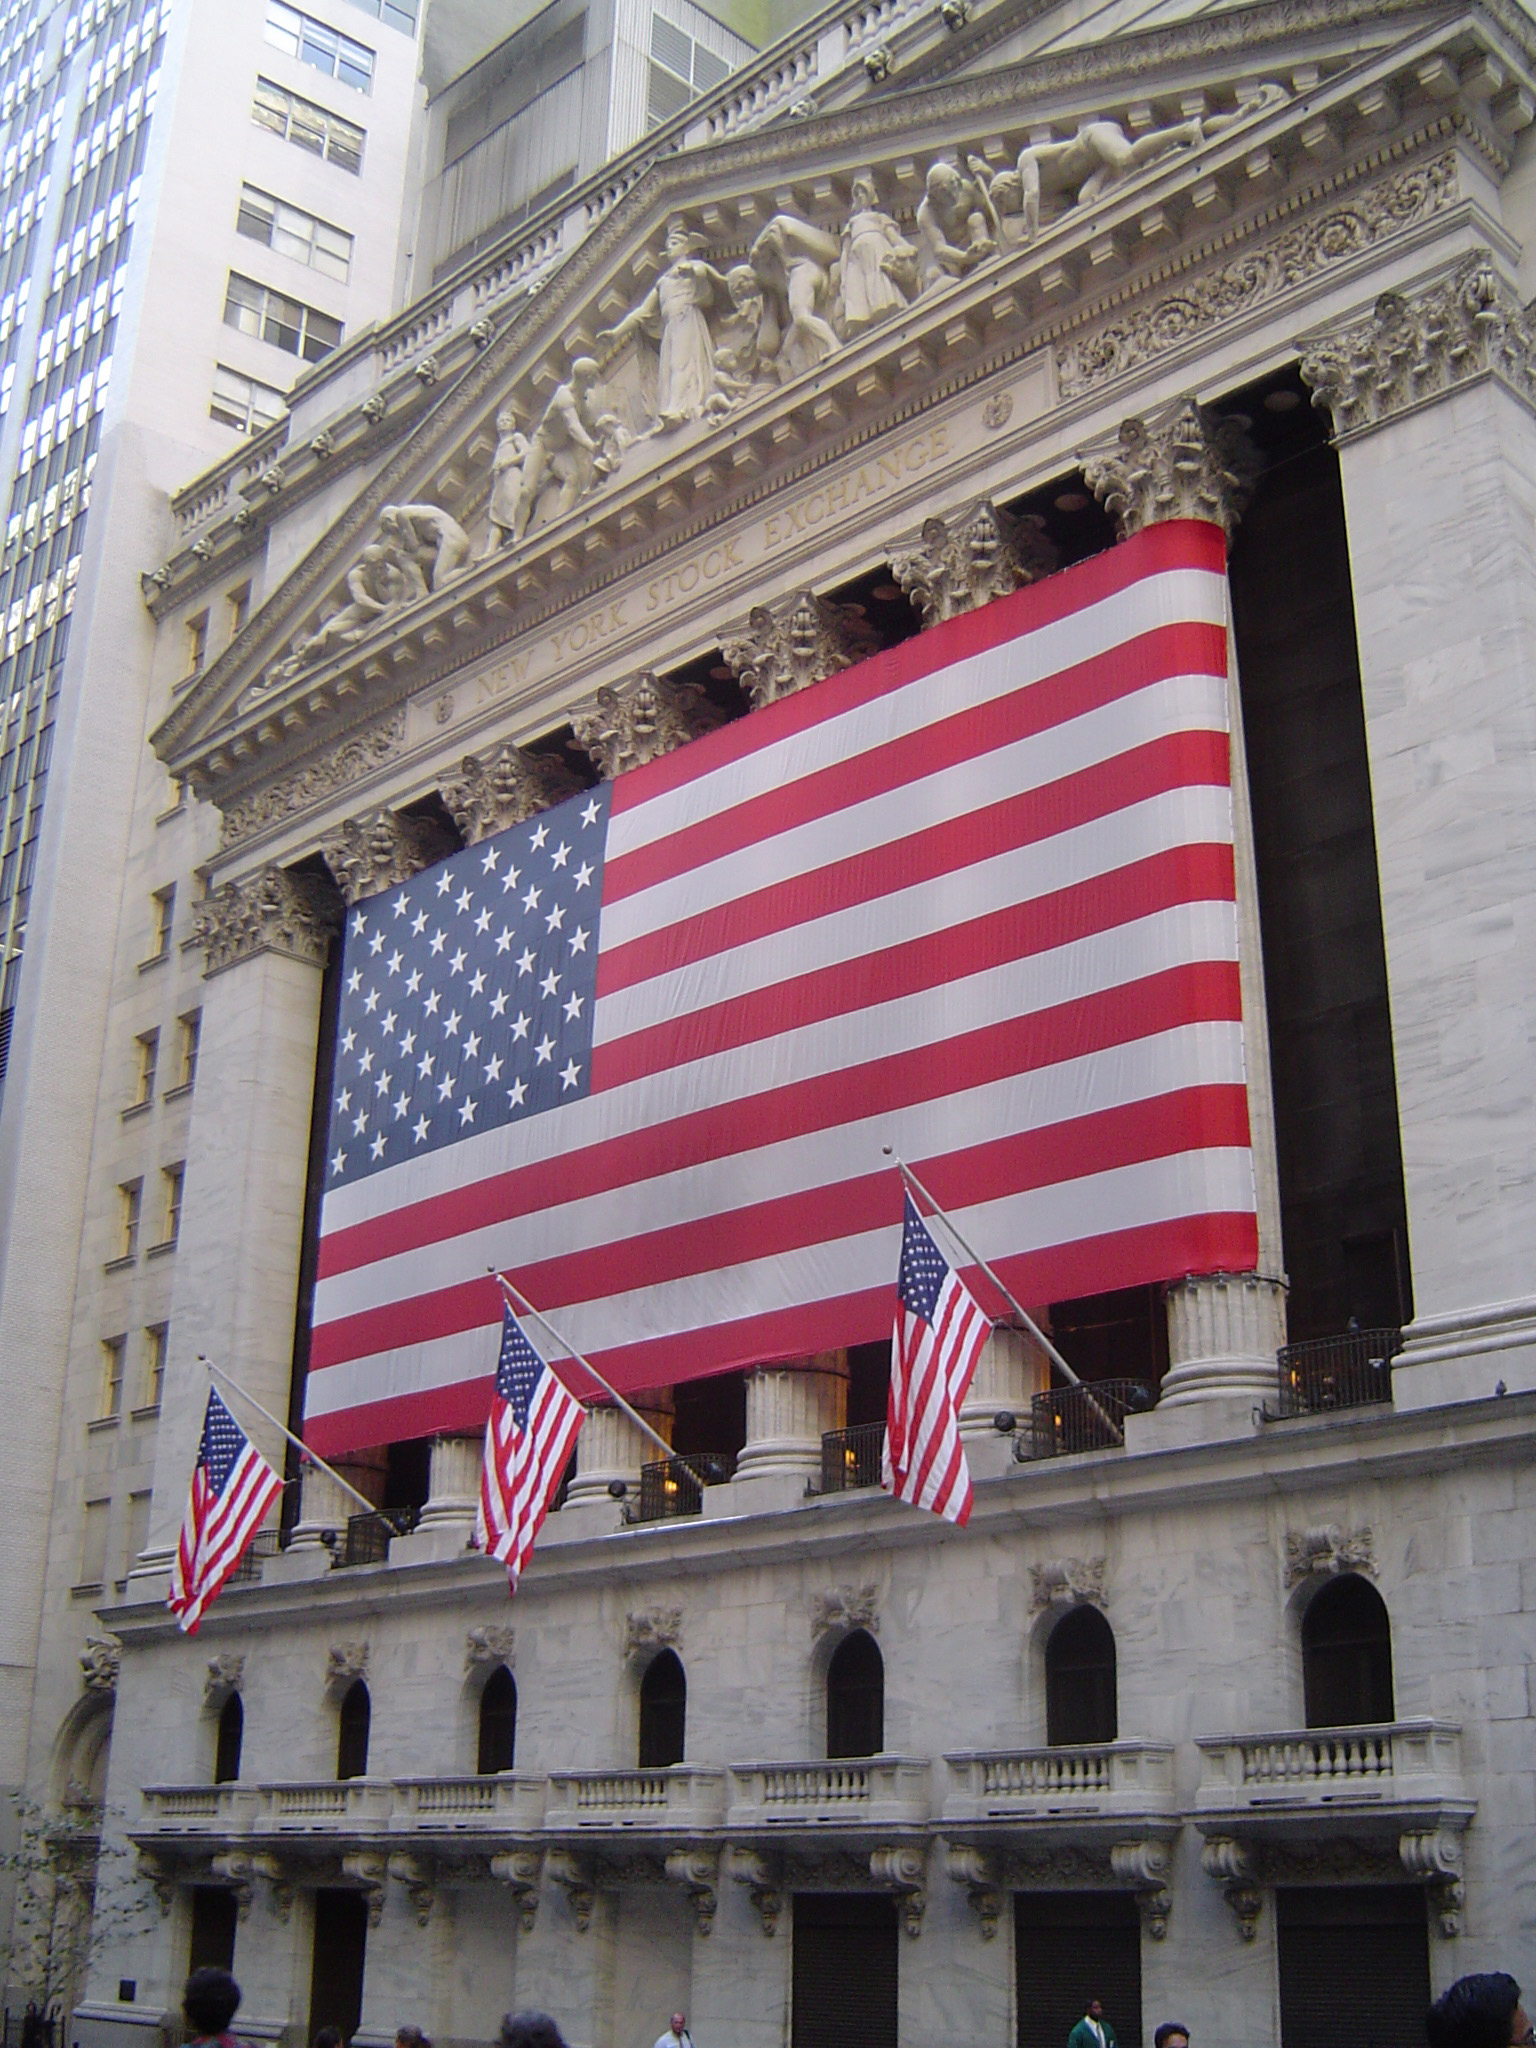 Big American Flag on Old Vintage Architectural Building at Wall Street in New York.